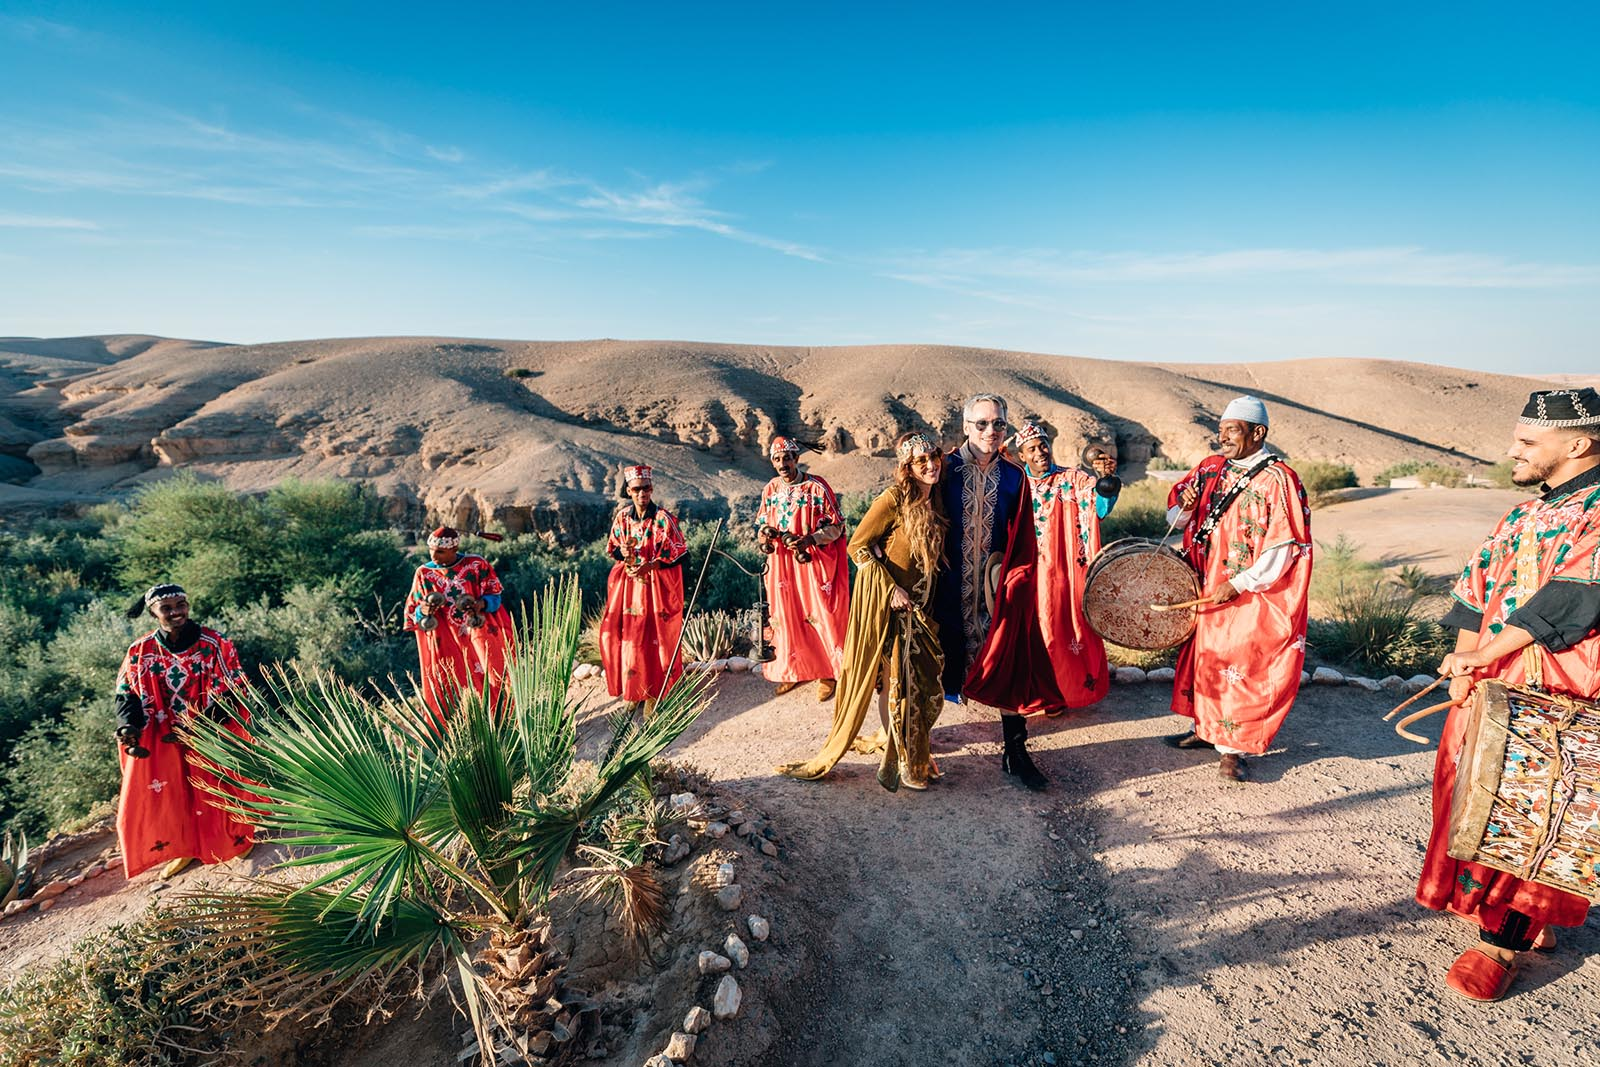 luxury wedding in marrakech la pause desert of agafay la mamounia and la maison arabe